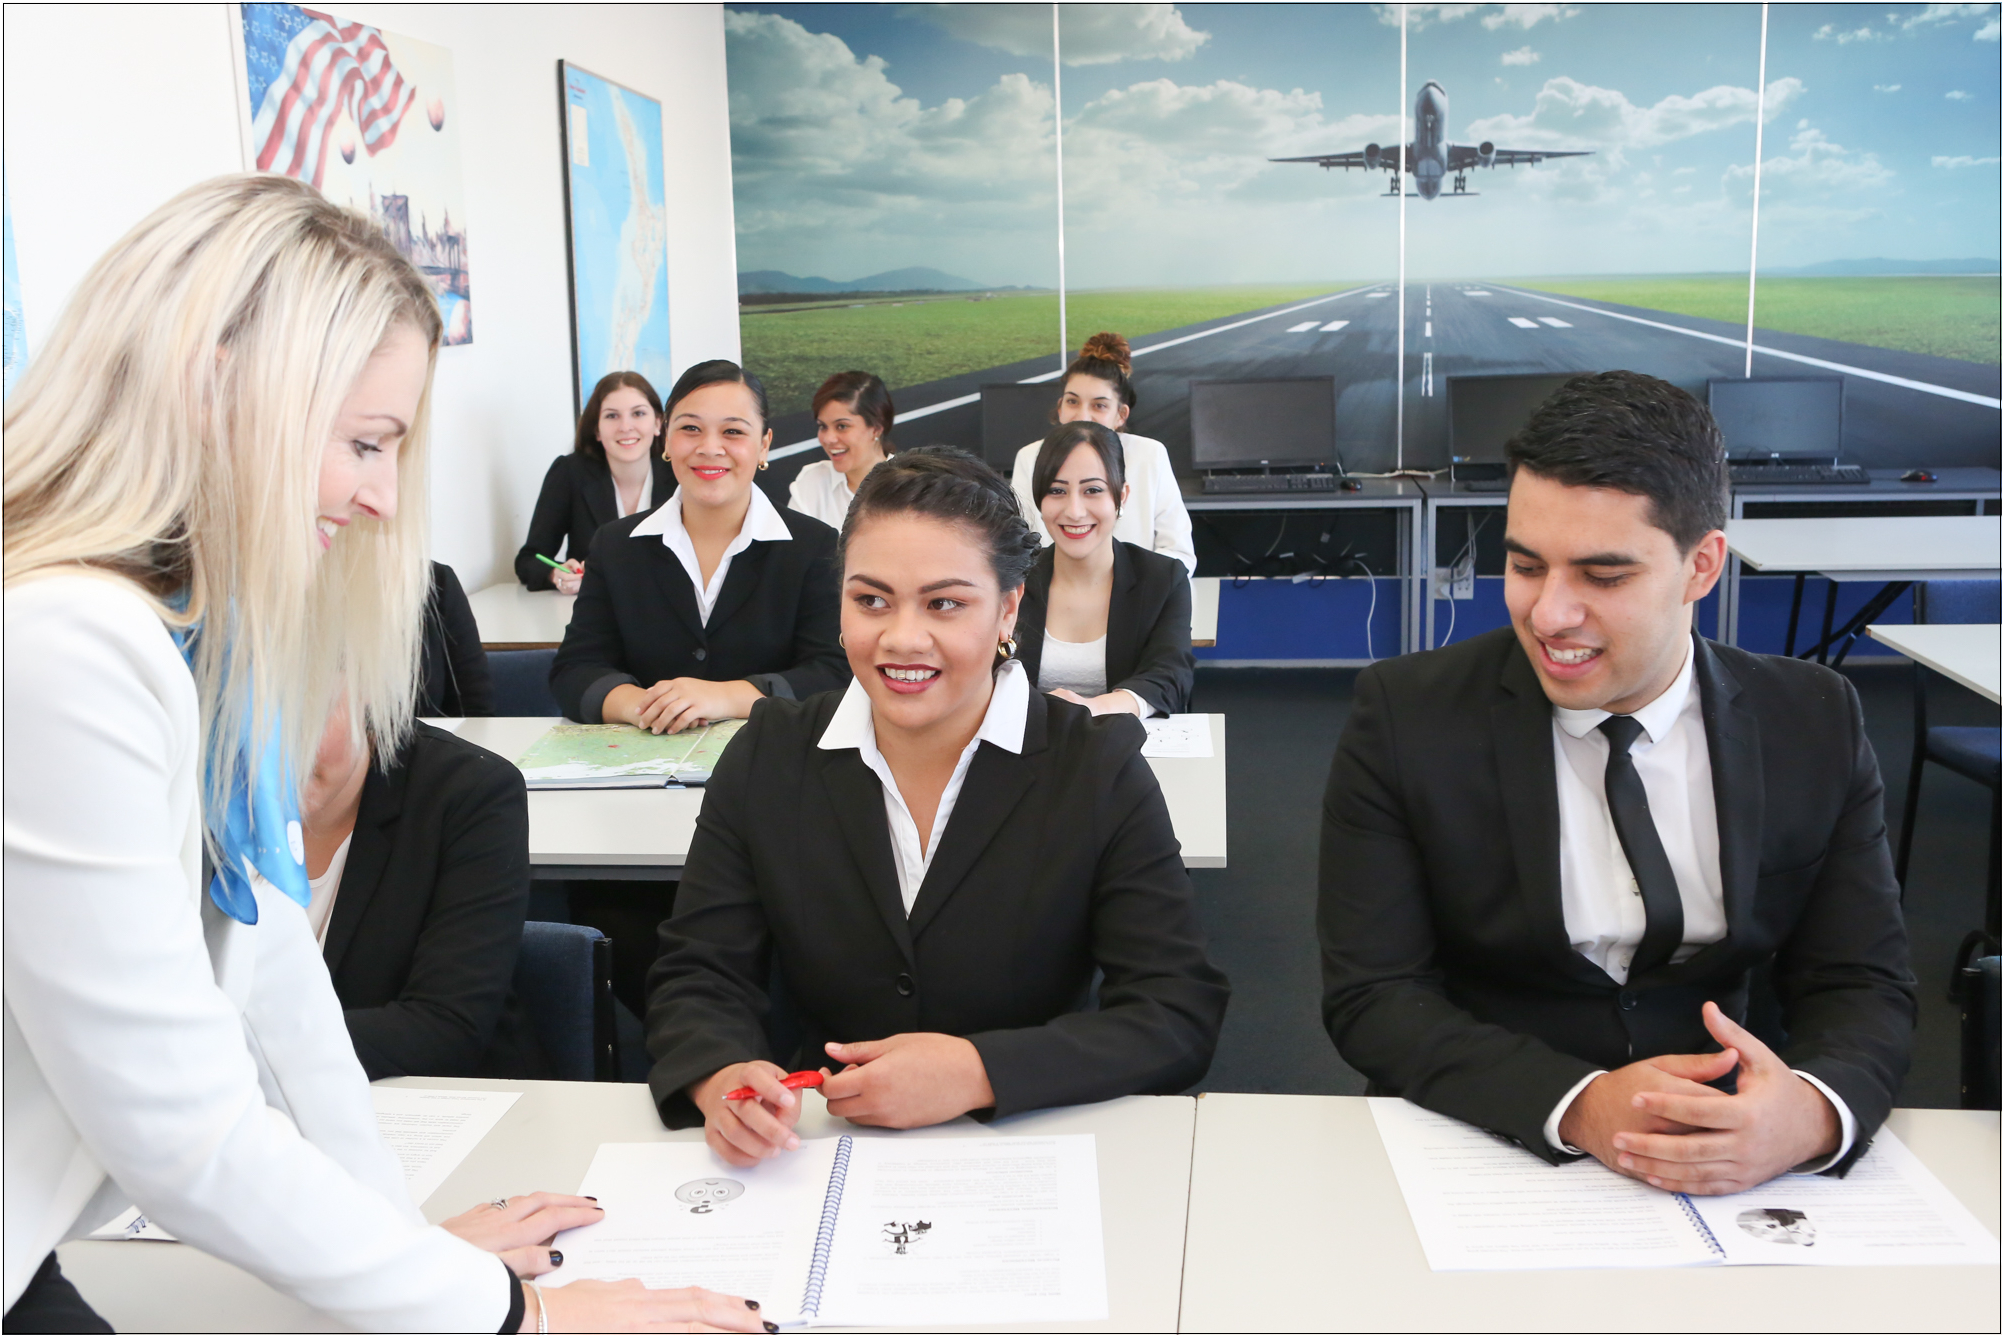 ITC | Diploma in International Tourism and Travel Management Level 5